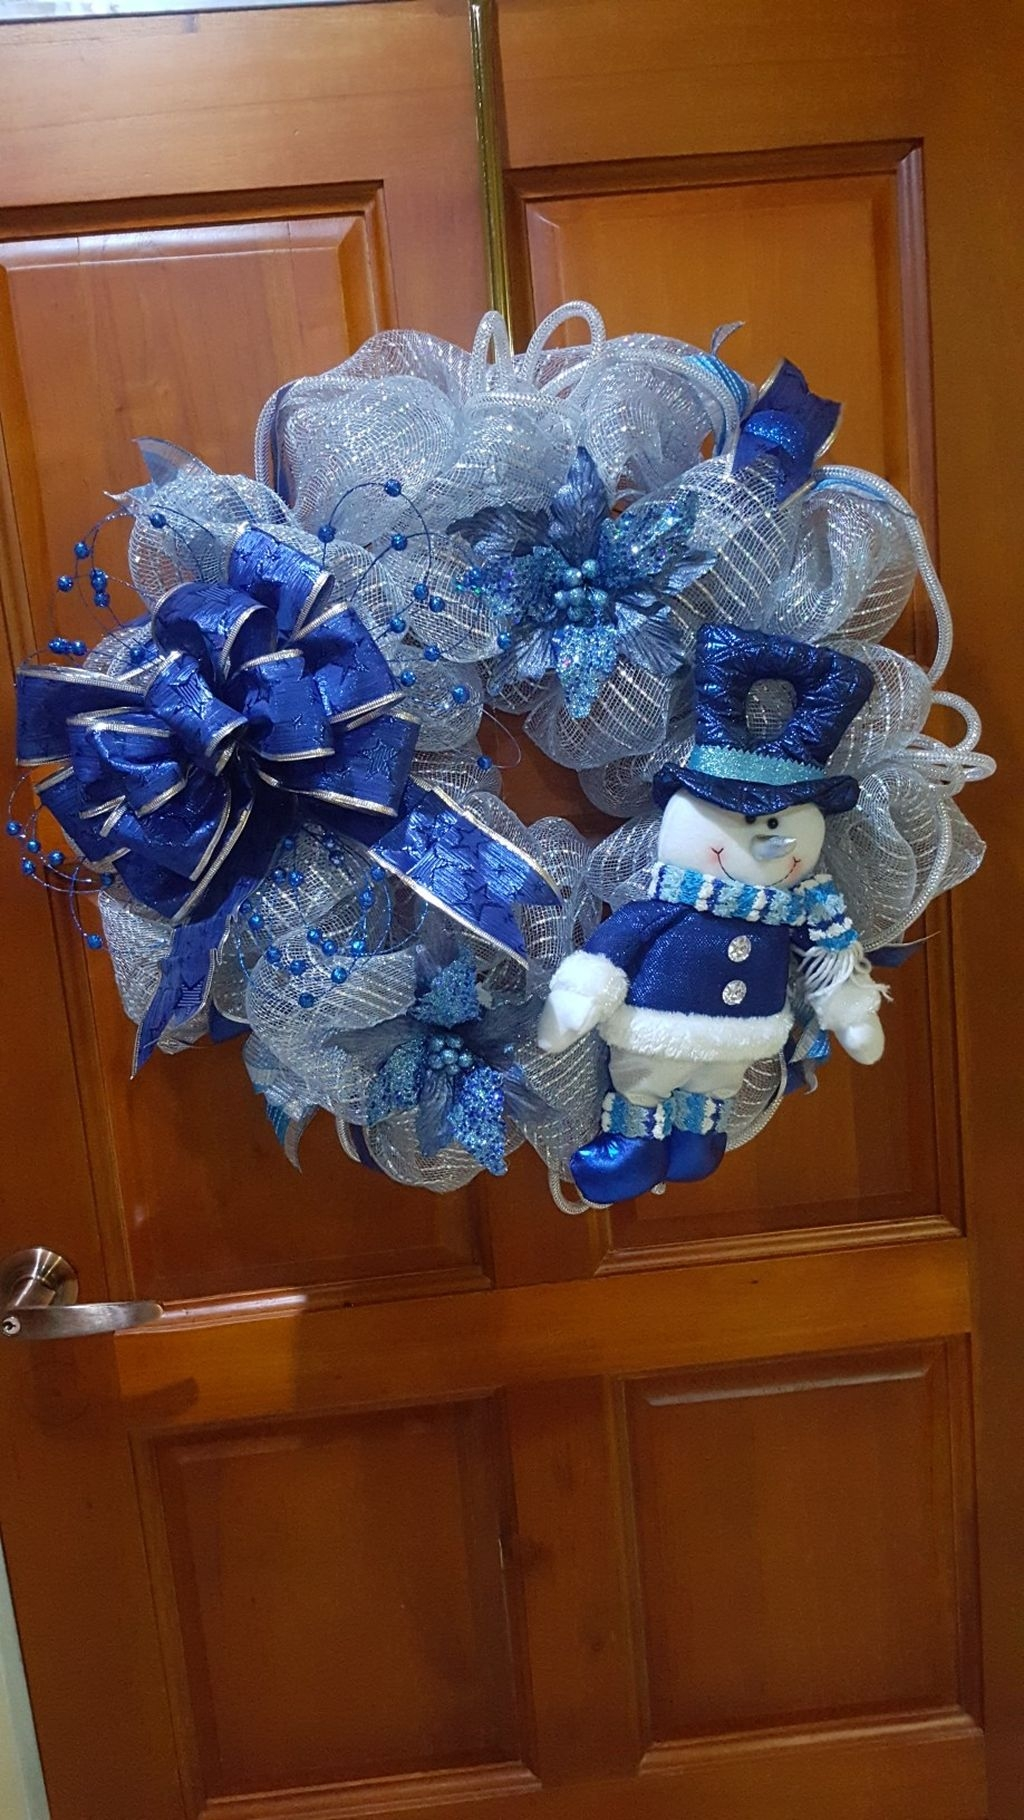 Amazing Silver And Blue Christmas Decoration Ideas For Christmas And New Year36